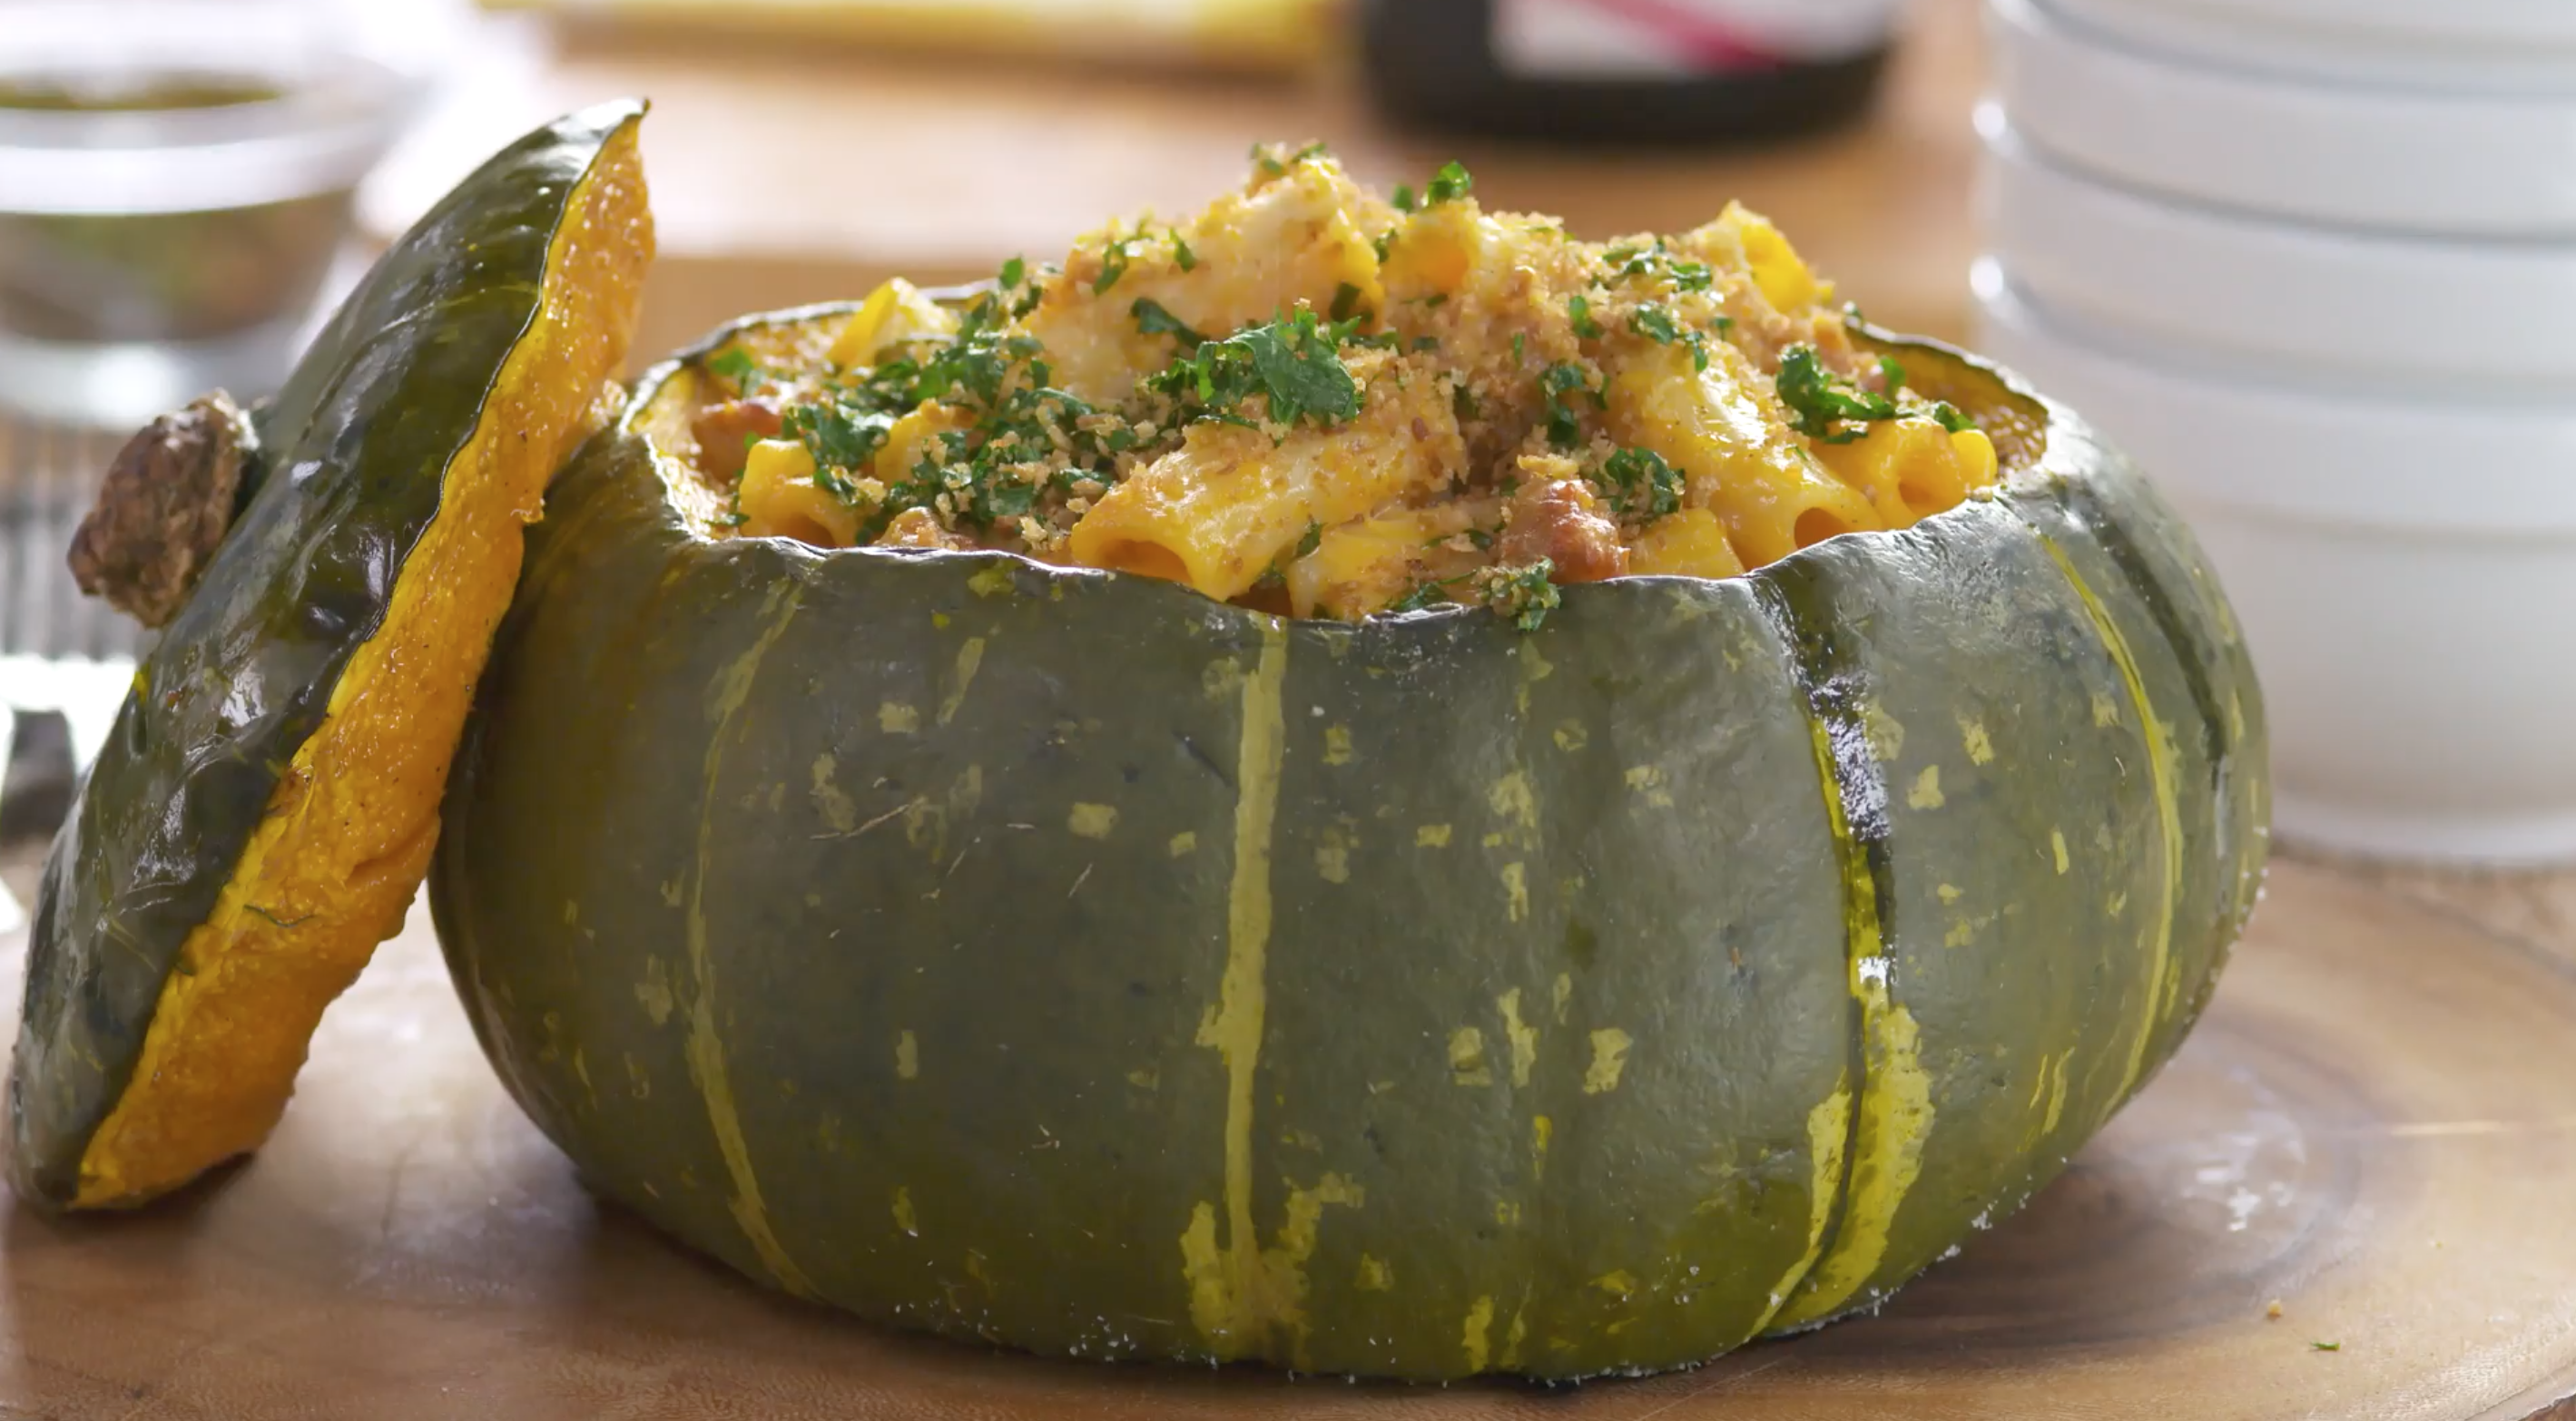 Best Bites: Chorizo sage mac and cheese baked in a squash